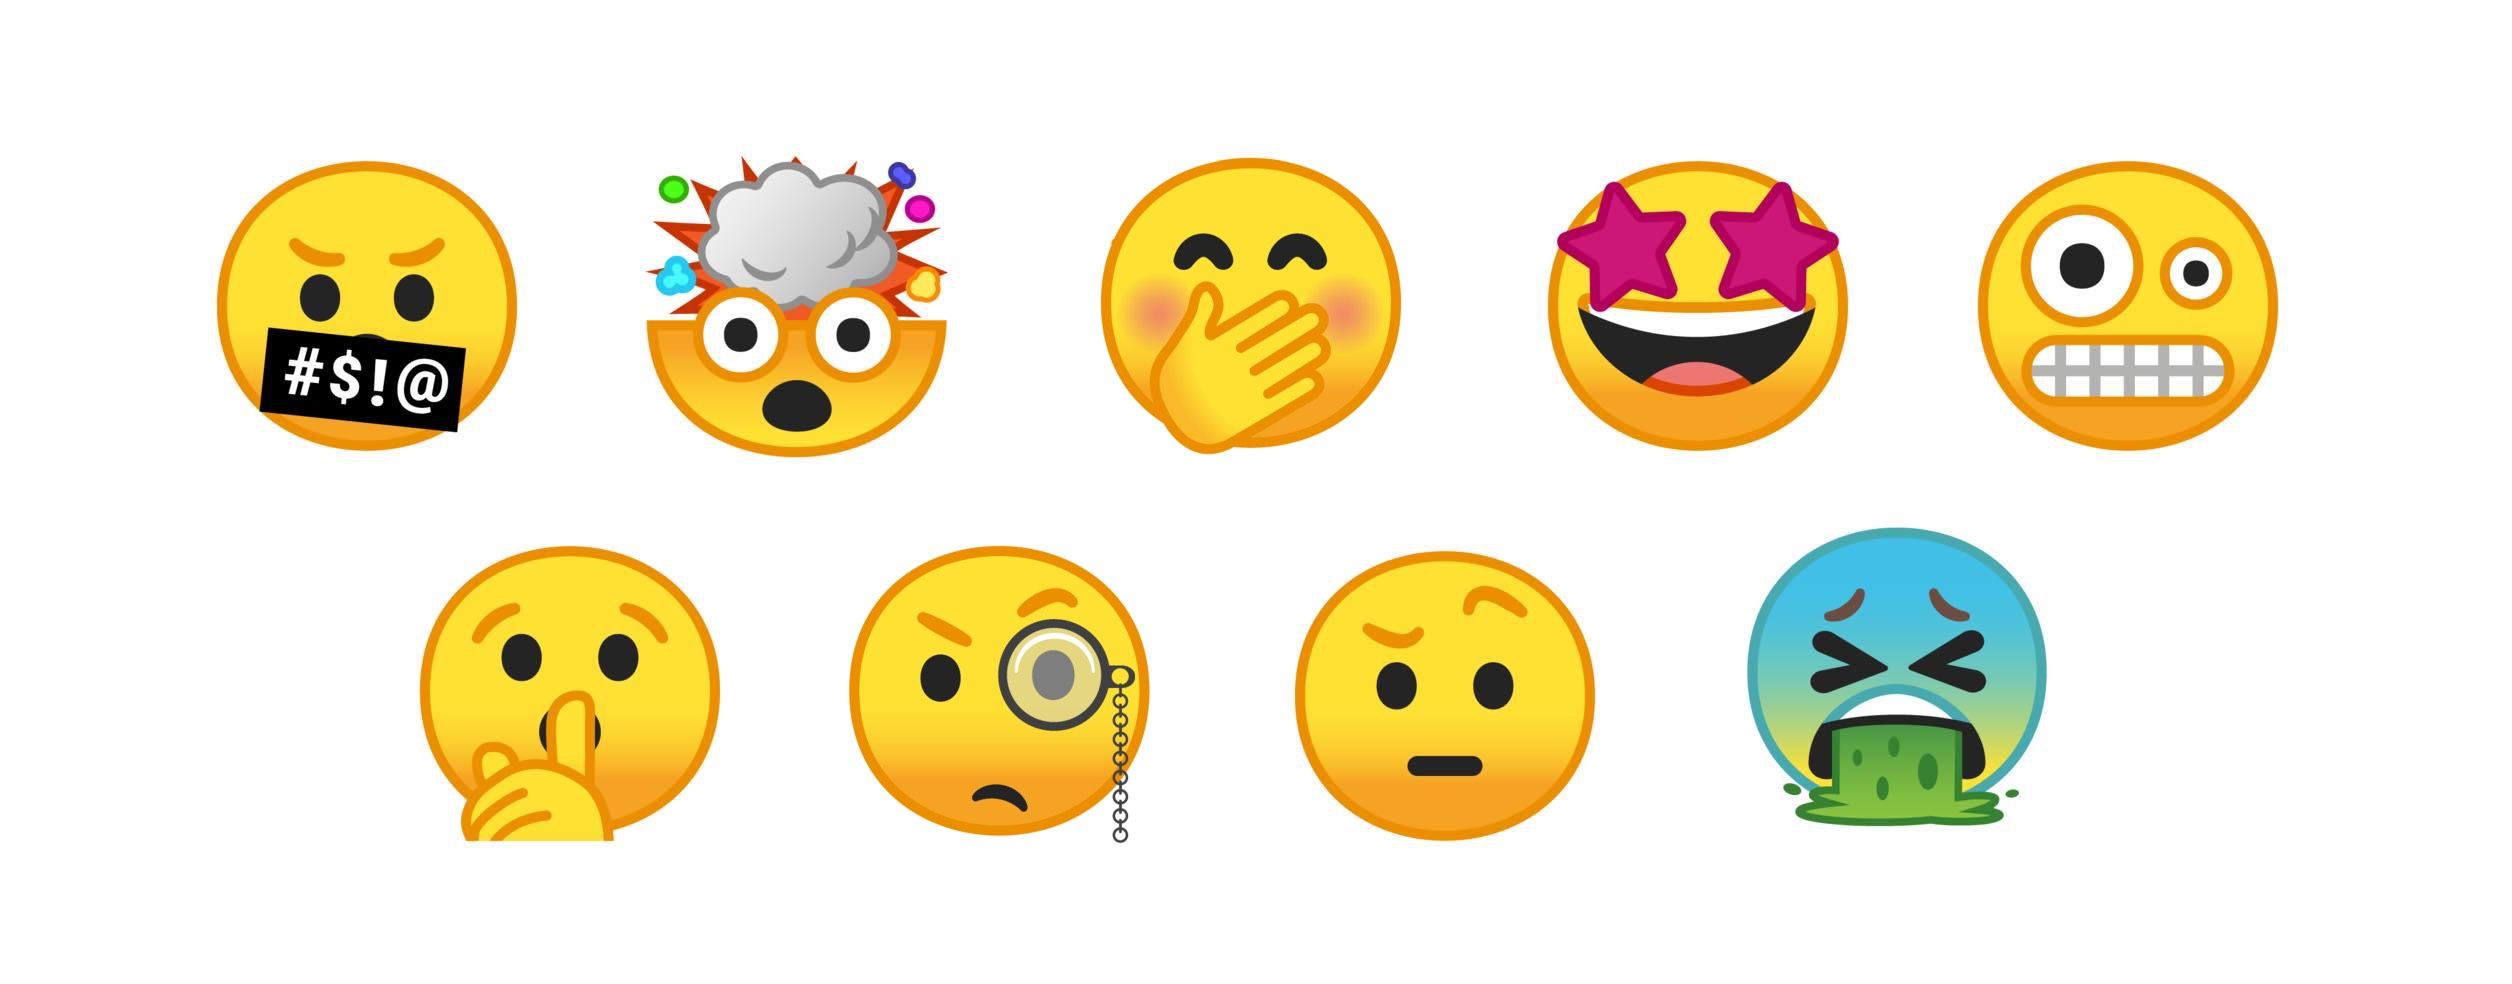 new-emojis-android-8-smileys-emojipedia